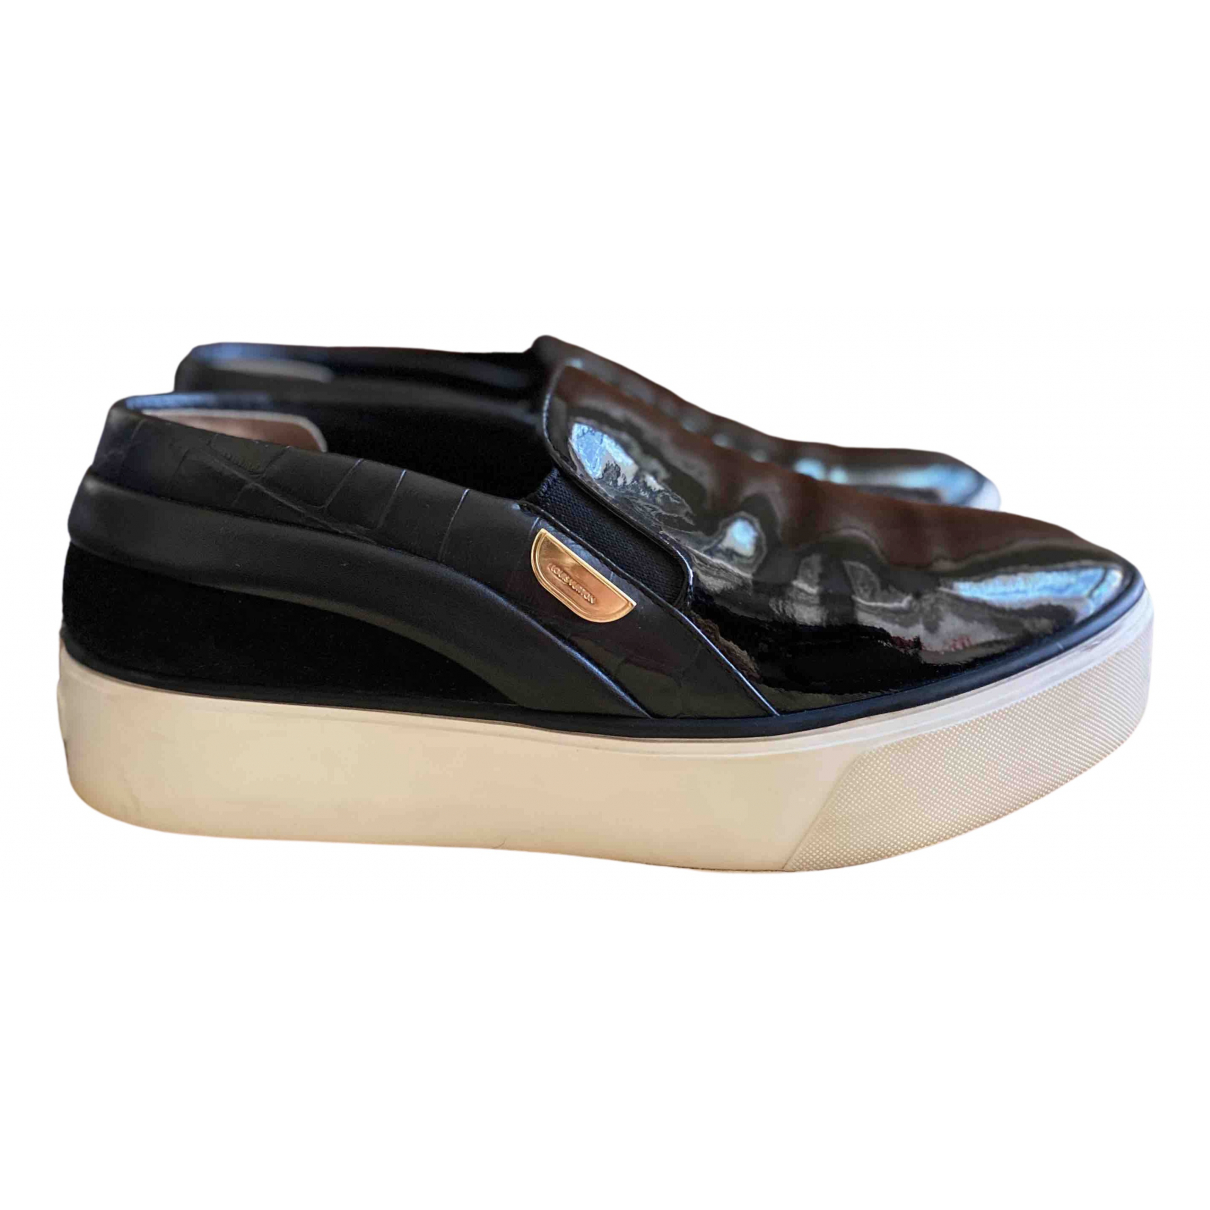 Louis Vuitton N Black Patent leather Trainers for Women 39 EU